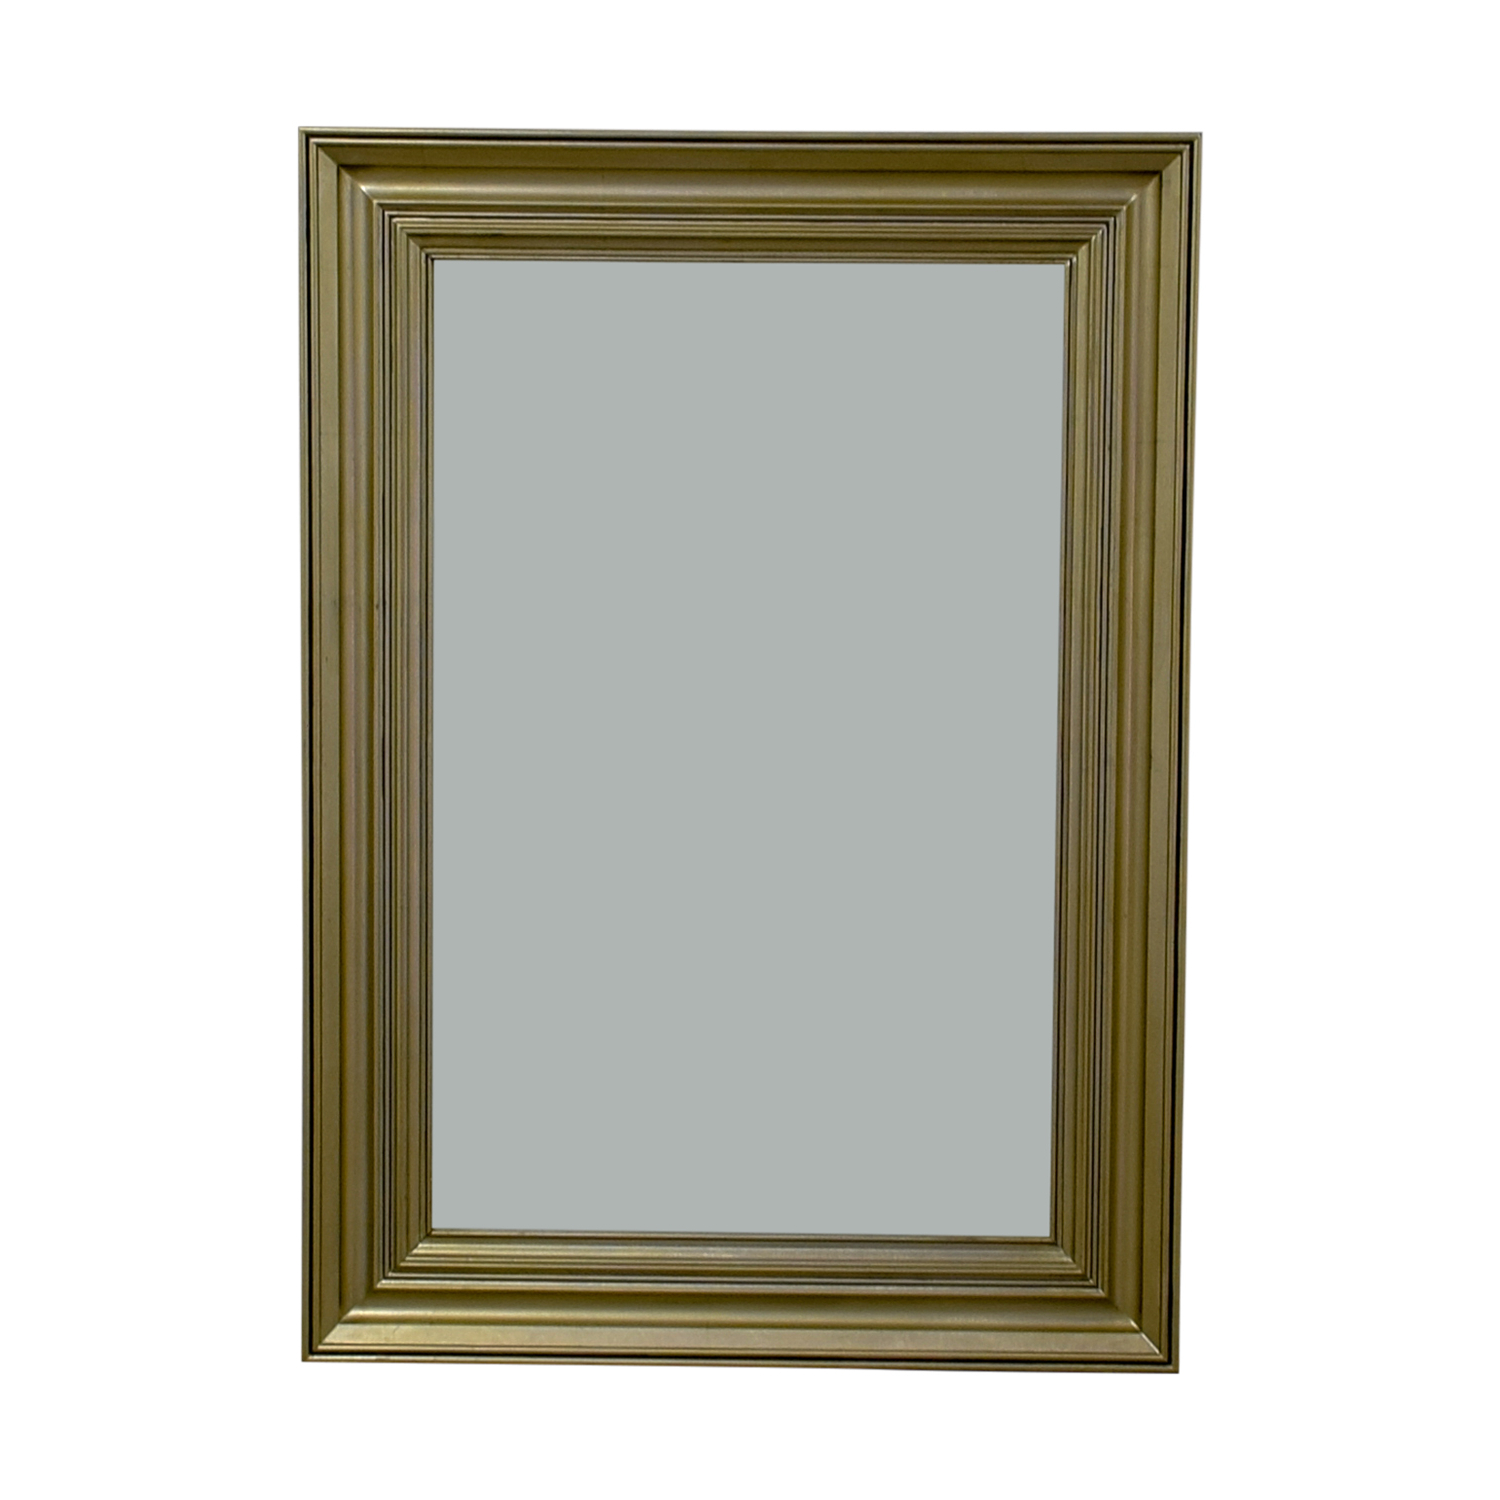 [%90% Off – Pottery Barn Pottery Barn Gold Framed Wall Mirror / Decor Pertaining To Most Recent Pottery Barn Wall Mirrors|Pottery Barn Wall Mirrors Throughout Fashionable 90% Off – Pottery Barn Pottery Barn Gold Framed Wall Mirror / Decor|Most Popular Pottery Barn Wall Mirrors With Regard To 90% Off – Pottery Barn Pottery Barn Gold Framed Wall Mirror / Decor|Trendy 90% Off – Pottery Barn Pottery Barn Gold Framed Wall Mirror / Decor Throughout Pottery Barn Wall Mirrors%] (View 4 of 20)